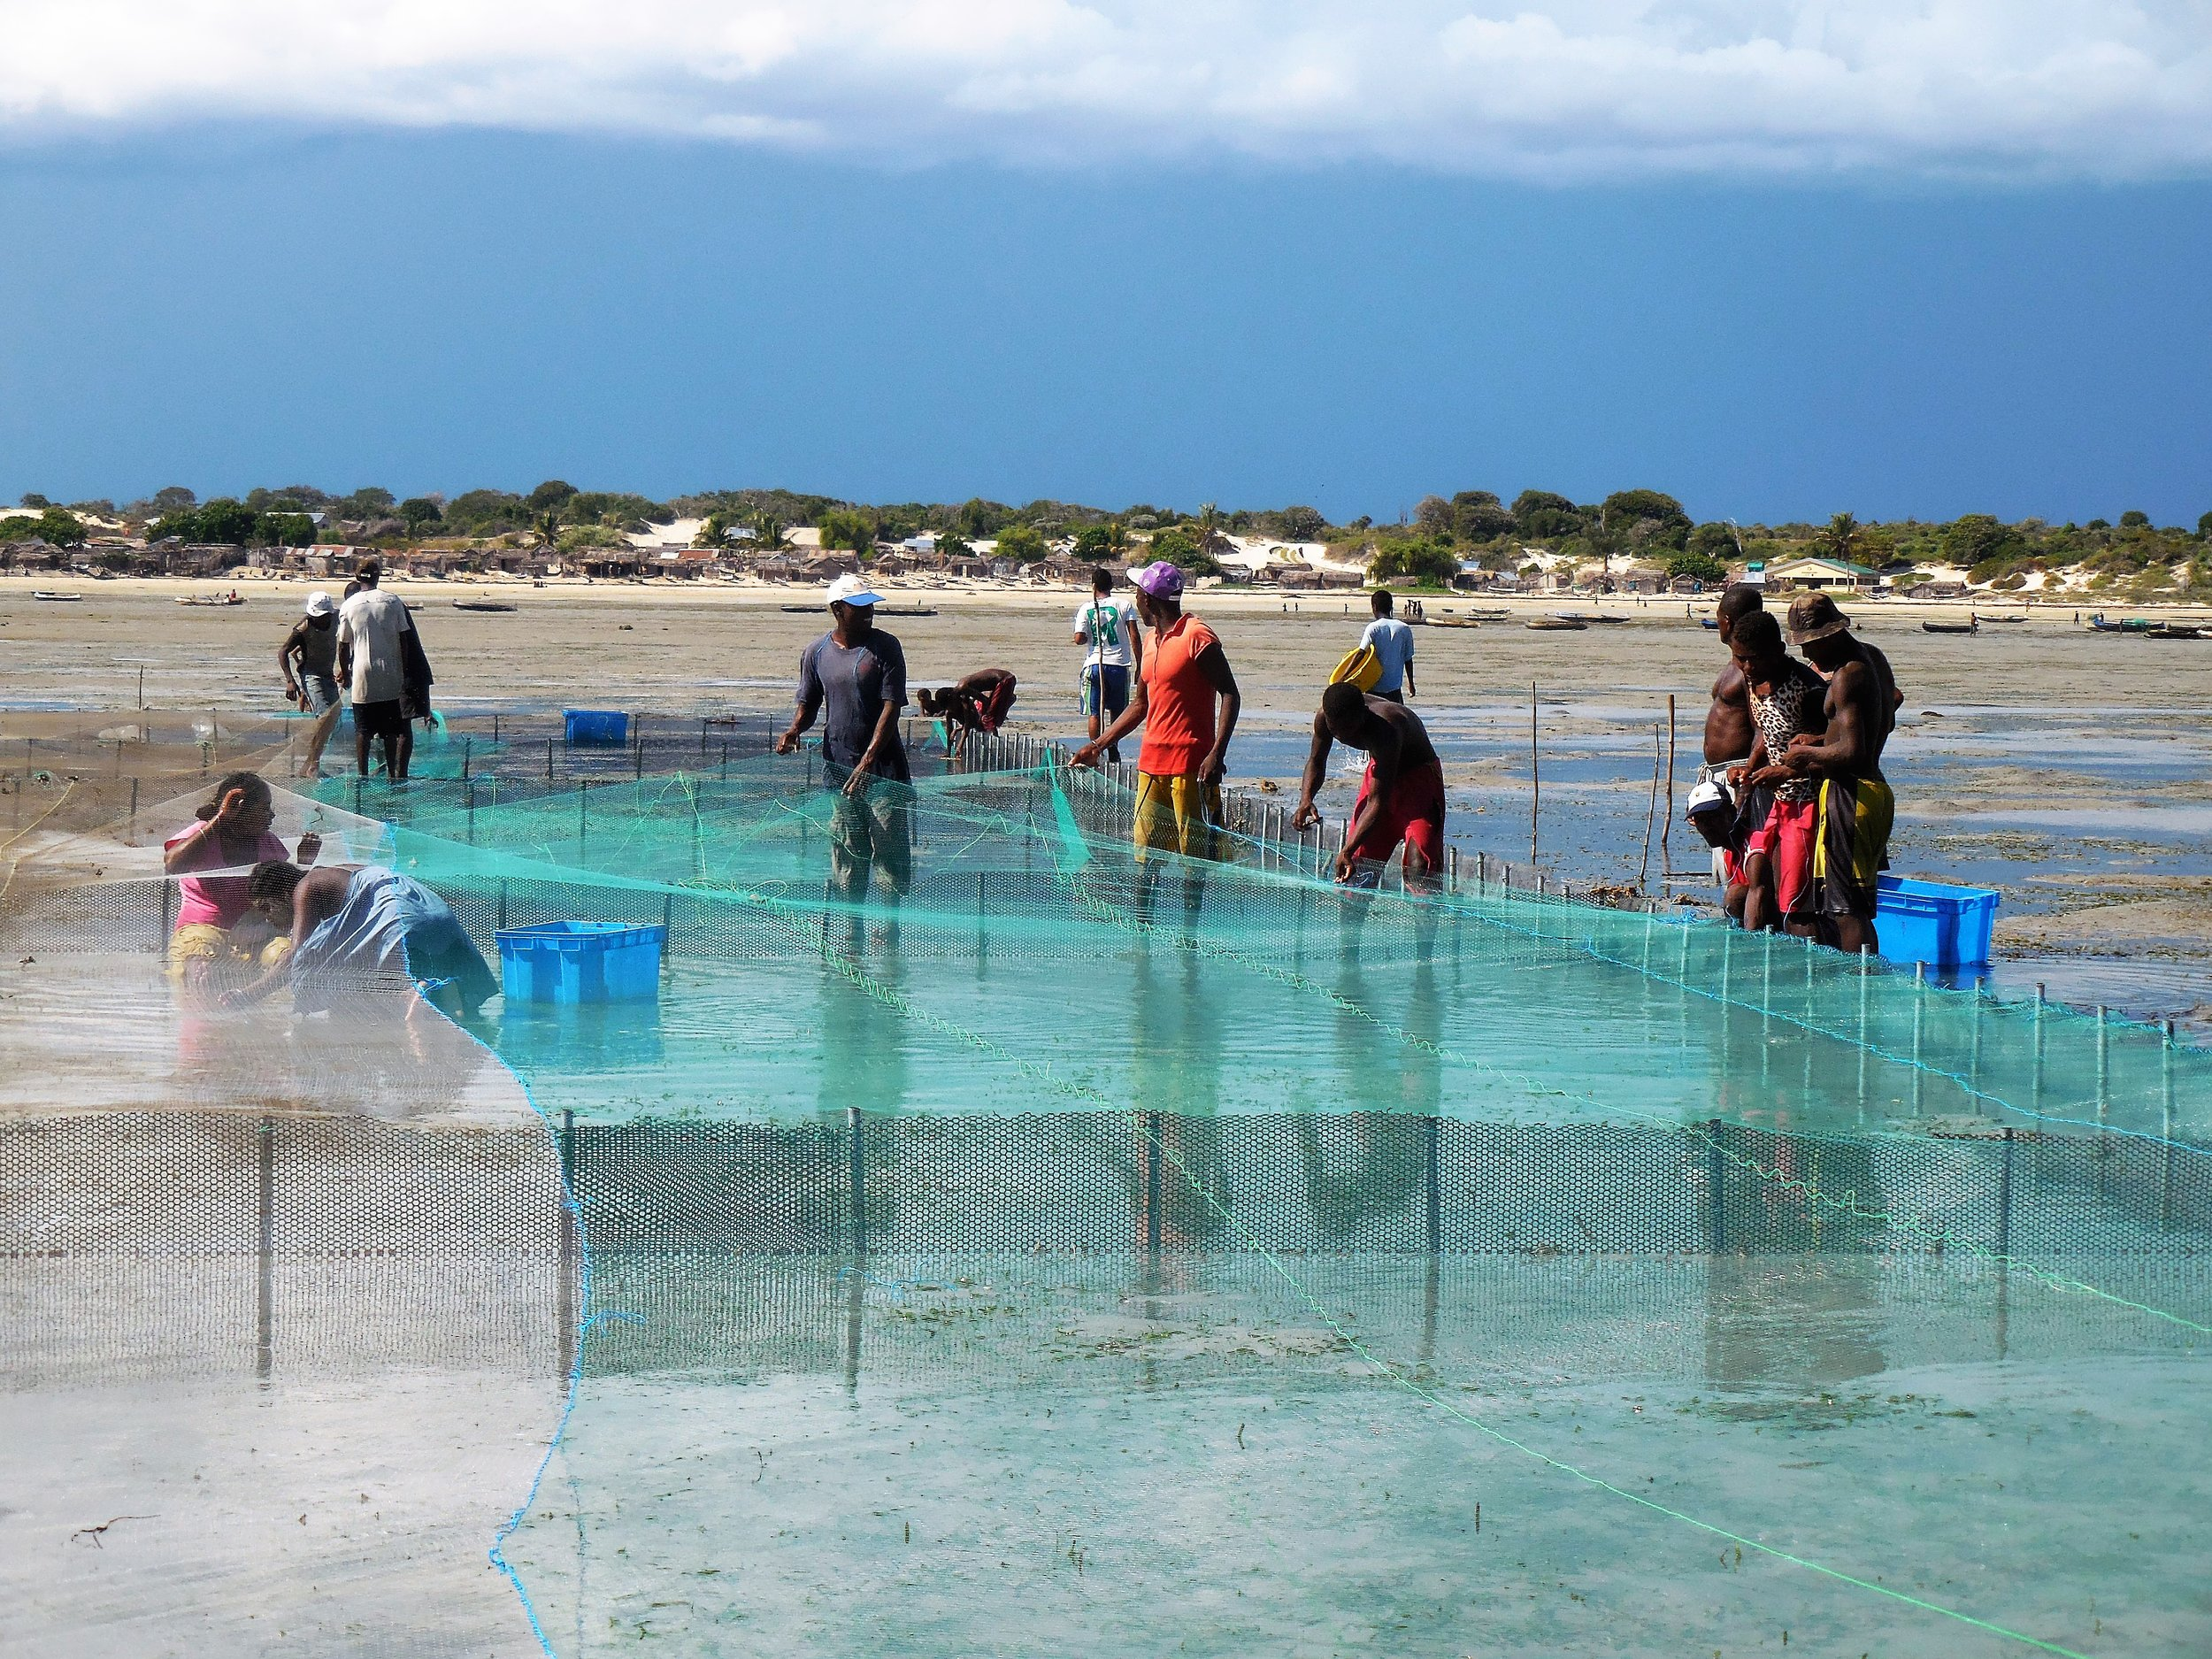 Building new sea cucumber pens in the tidal flats